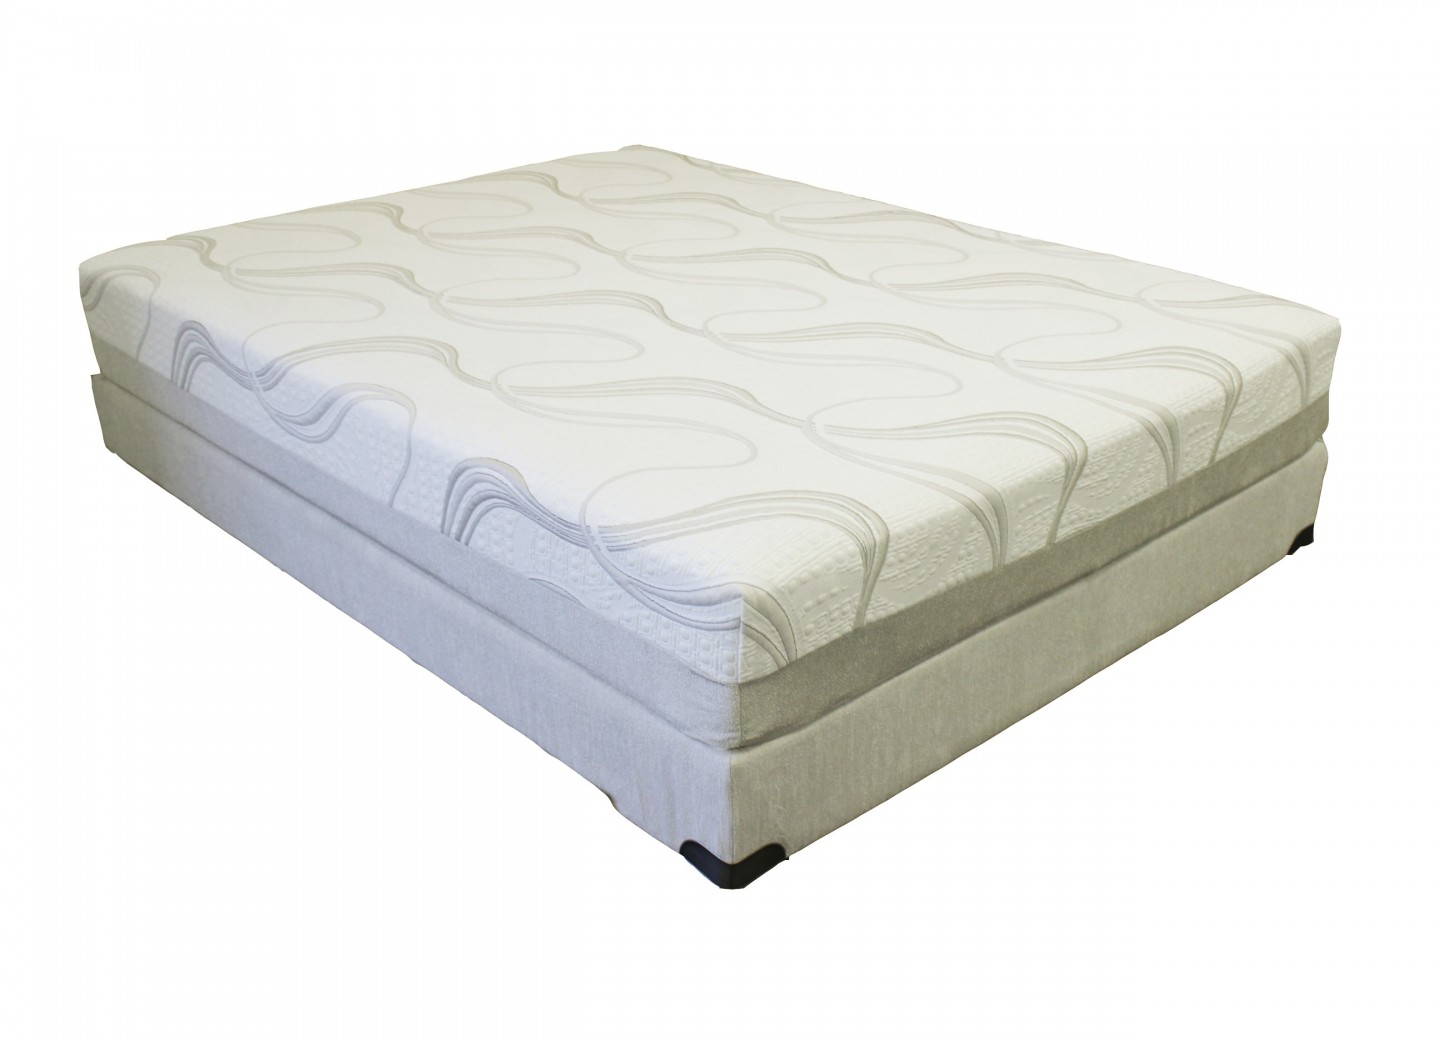 Elegant High Density Foam Mattress Gel Lux Memory Foam Mattress High Density Foam